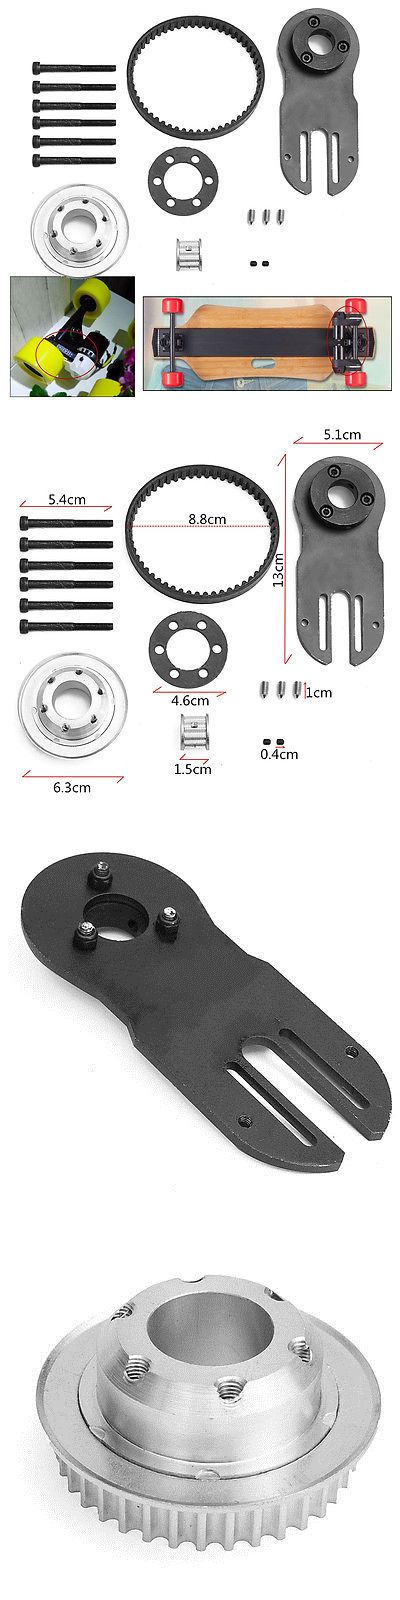 Other Skateboard Parts 159076: Diy Electric Skateboard Parts Pulleys And Motor Mount Kit For 83/90/97Mm Wheels -> BUY IT NOW ONLY: $52.99 on eBay!